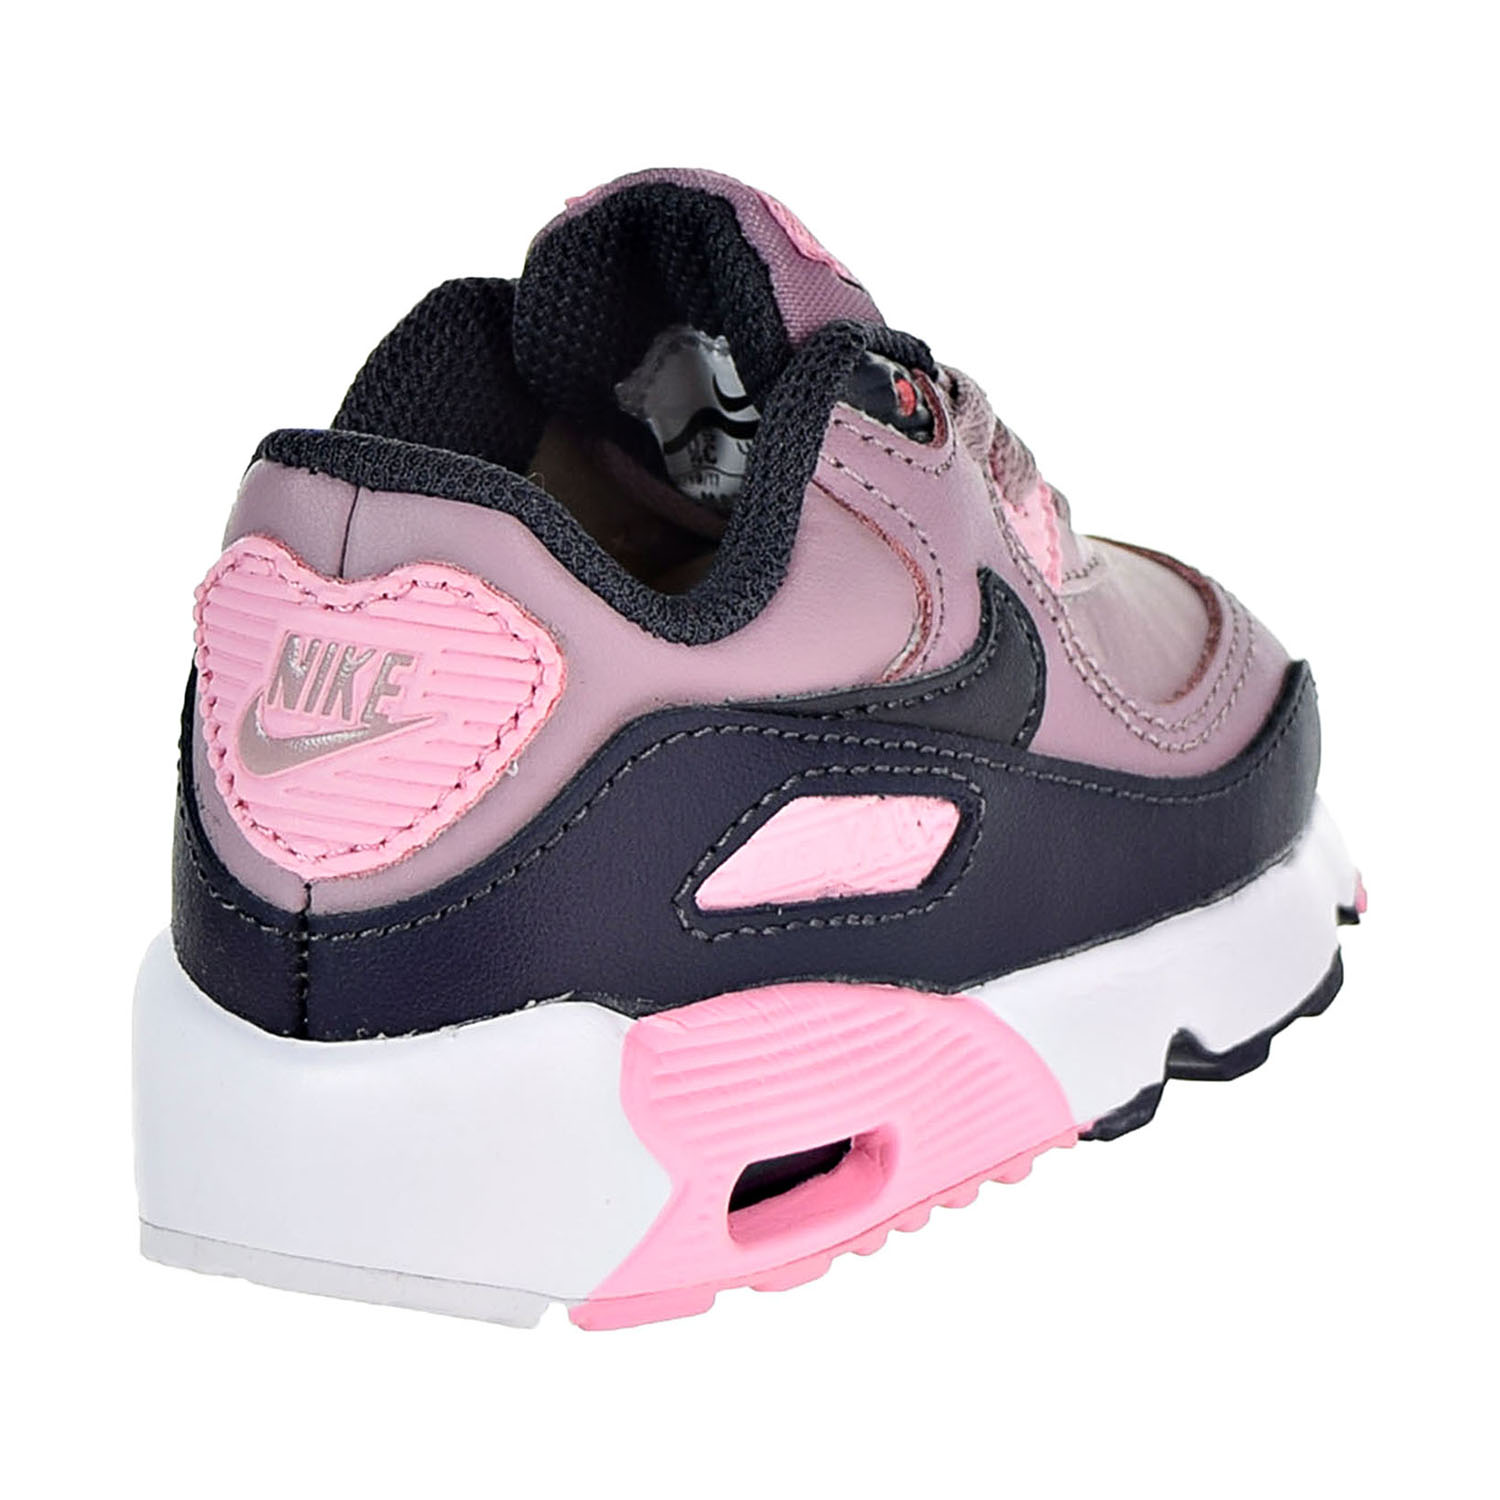 794440227 Nike Air Max 90 Leather Toddler s Shoes Elemental Rose 833379-602